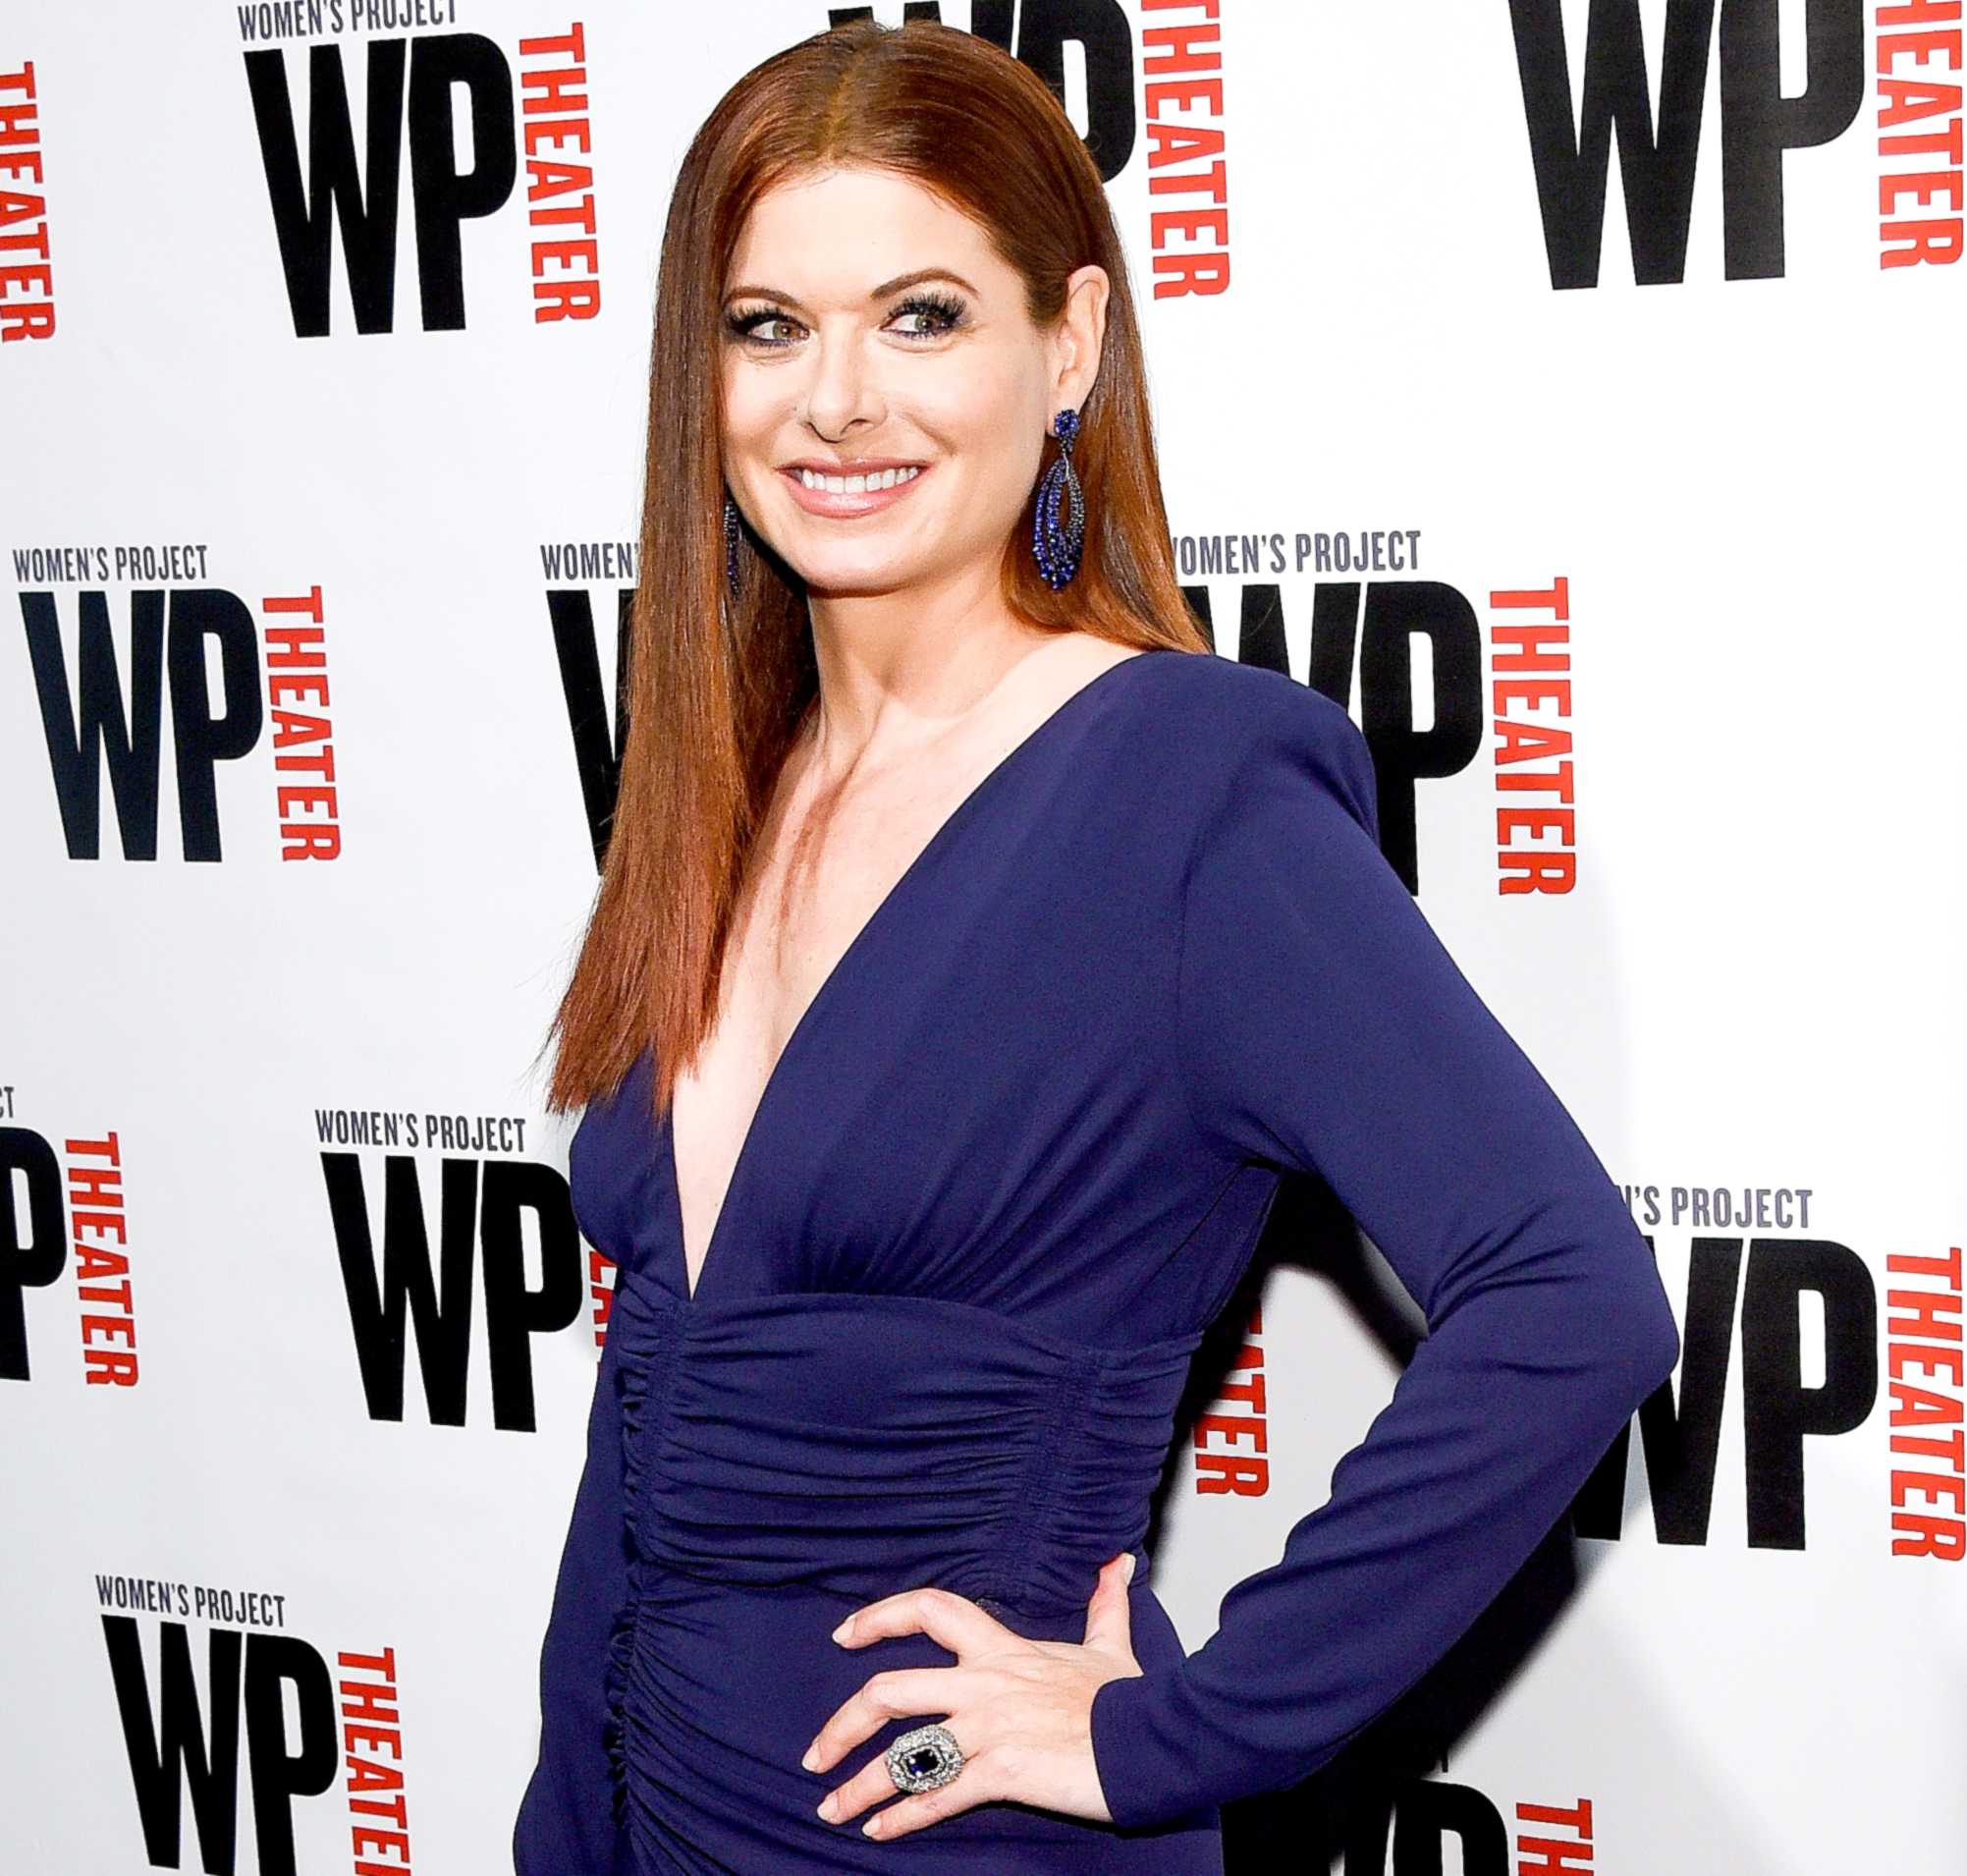 Debra Messing attends the 32nd Annual WP Theater's Women of Achievement Awards Gala at The Edison Ballroom on March 27, 2017 in New York City.